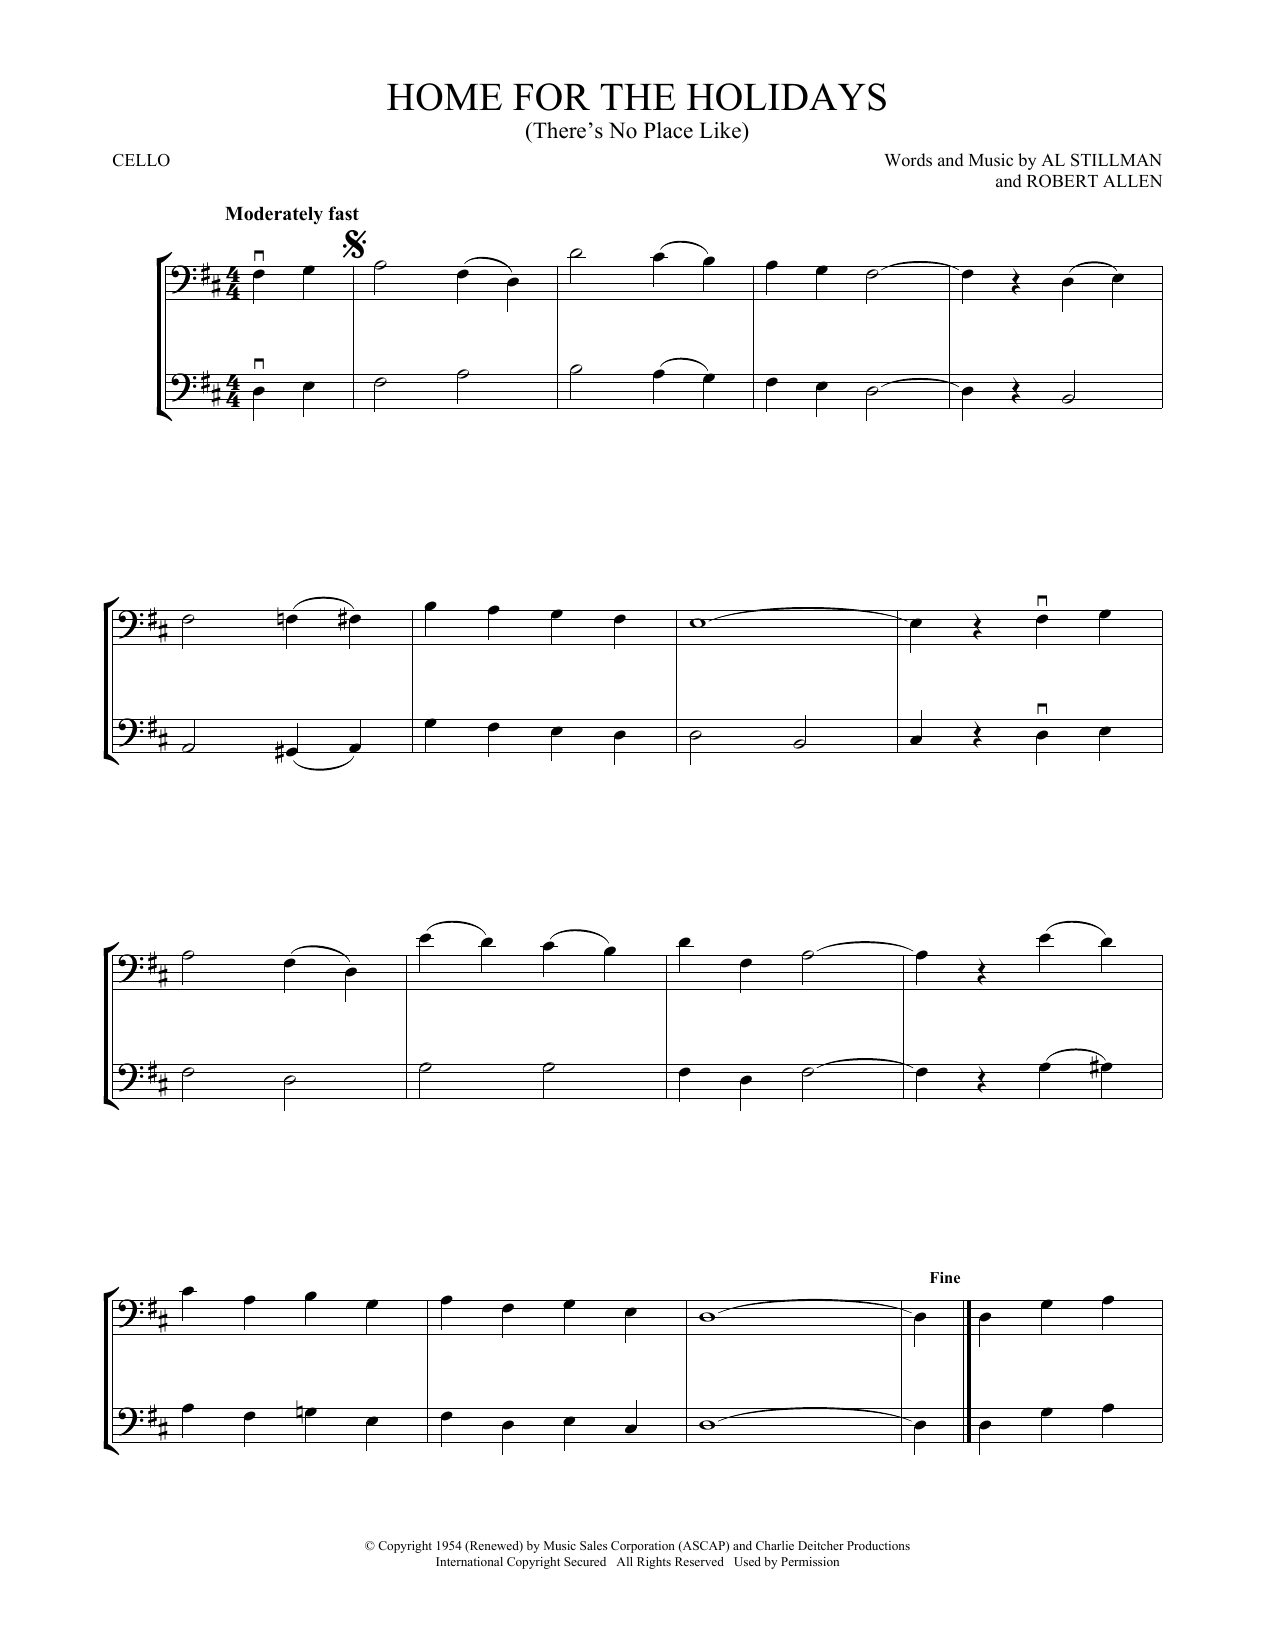 (There's No Place Like) Home For The Holidays (Cello Duet)